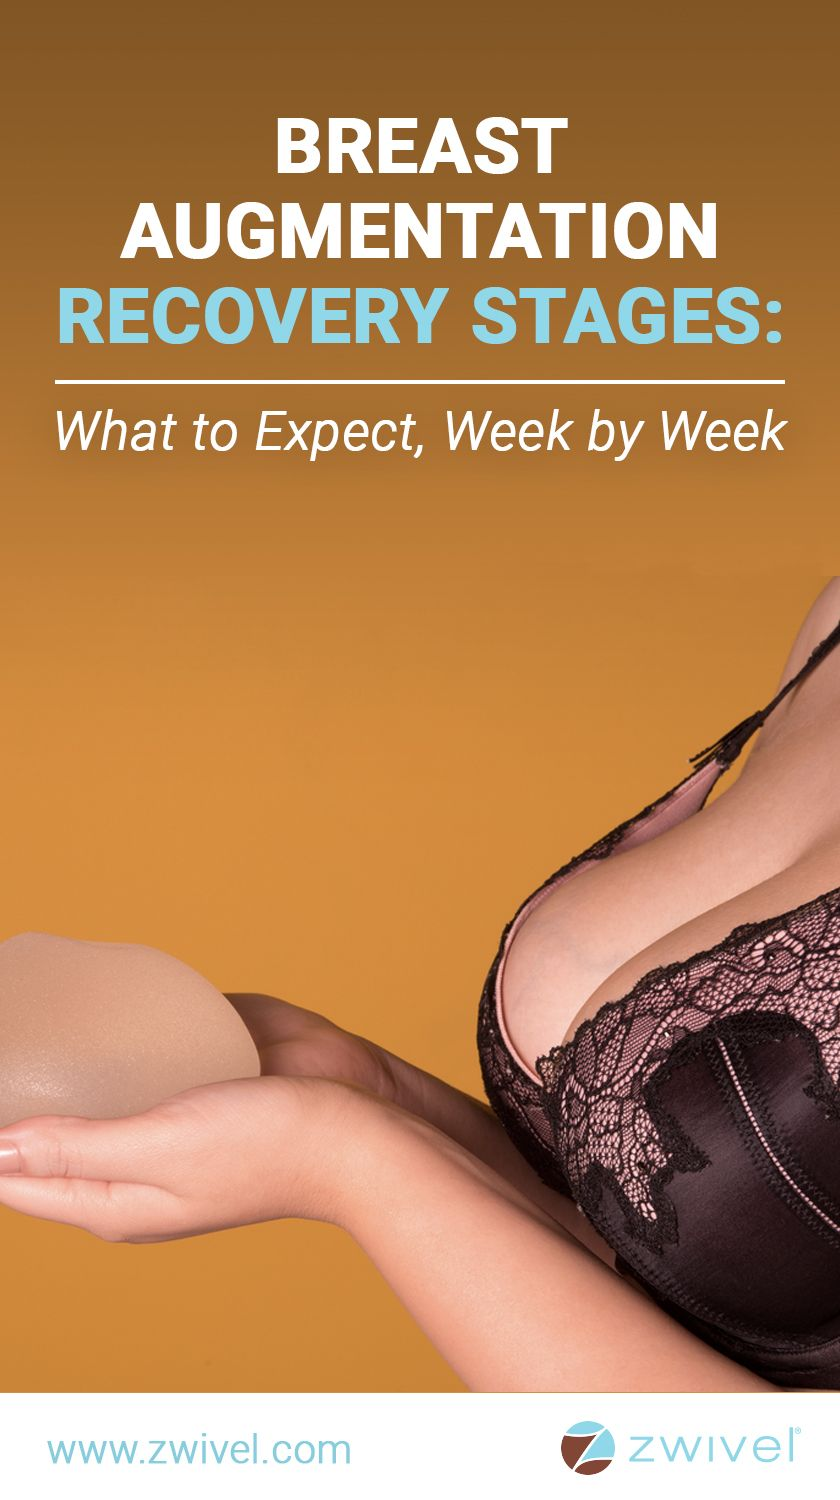 Breast Augmentation Recovery Stages What To Expect, Week